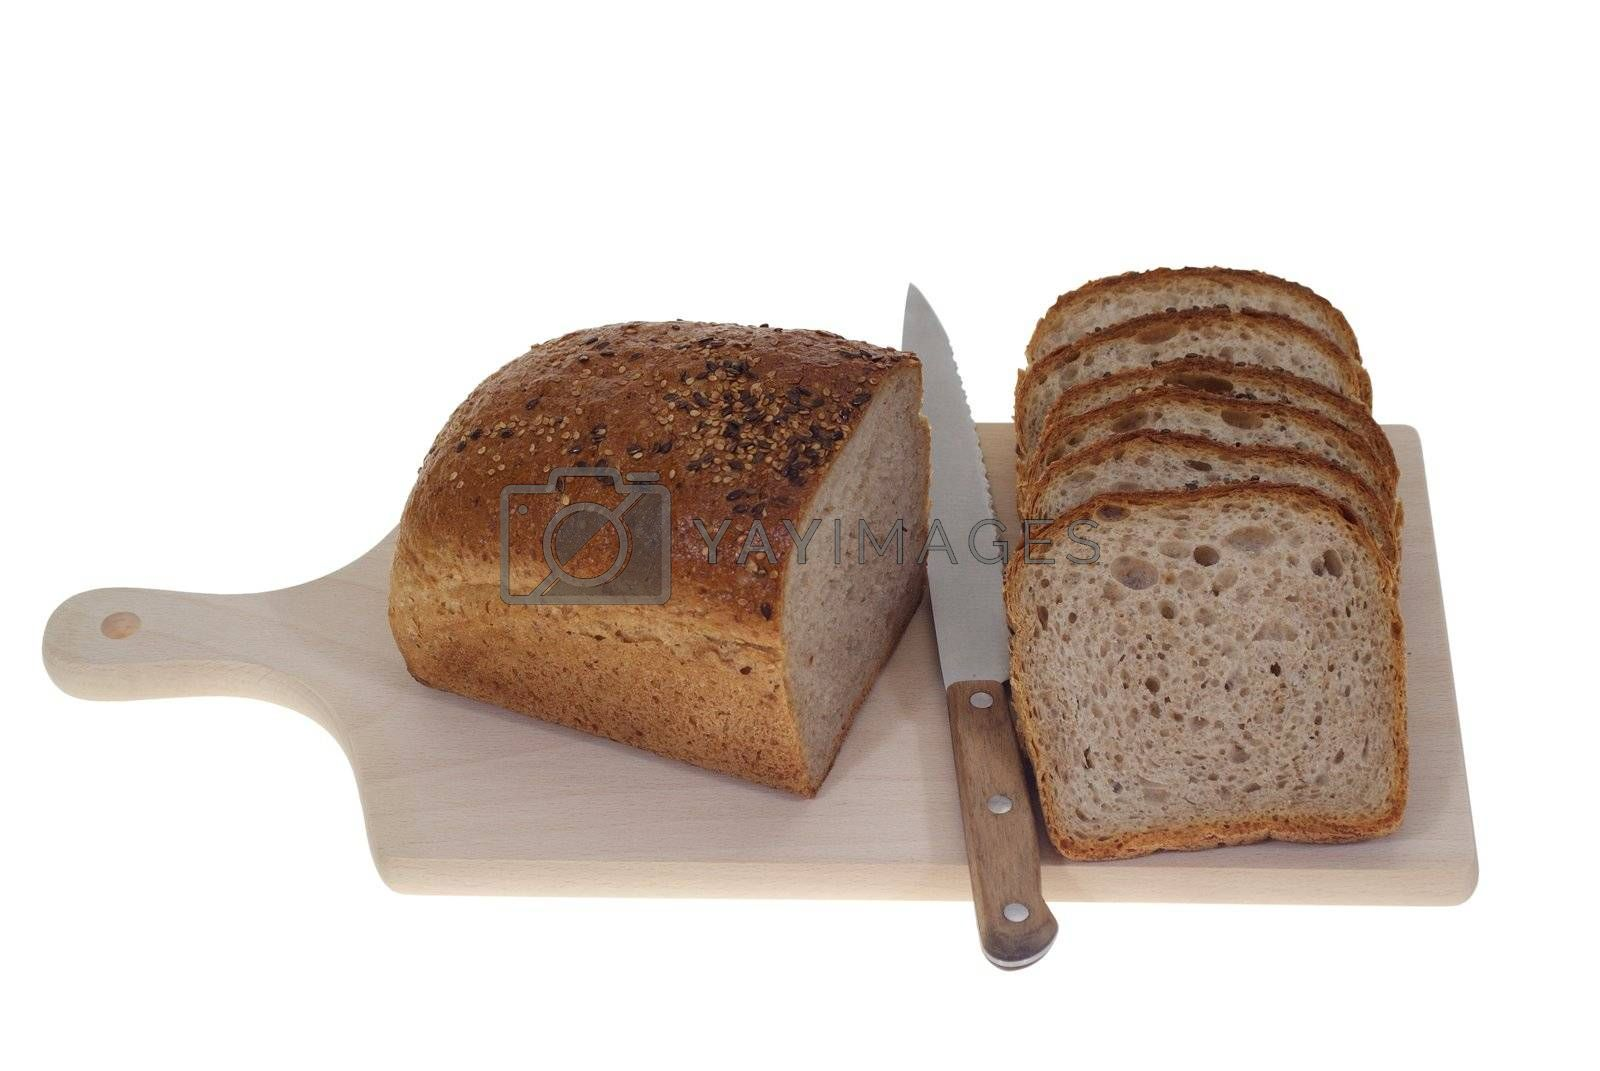 half of bread and slice of bread isolated on white background